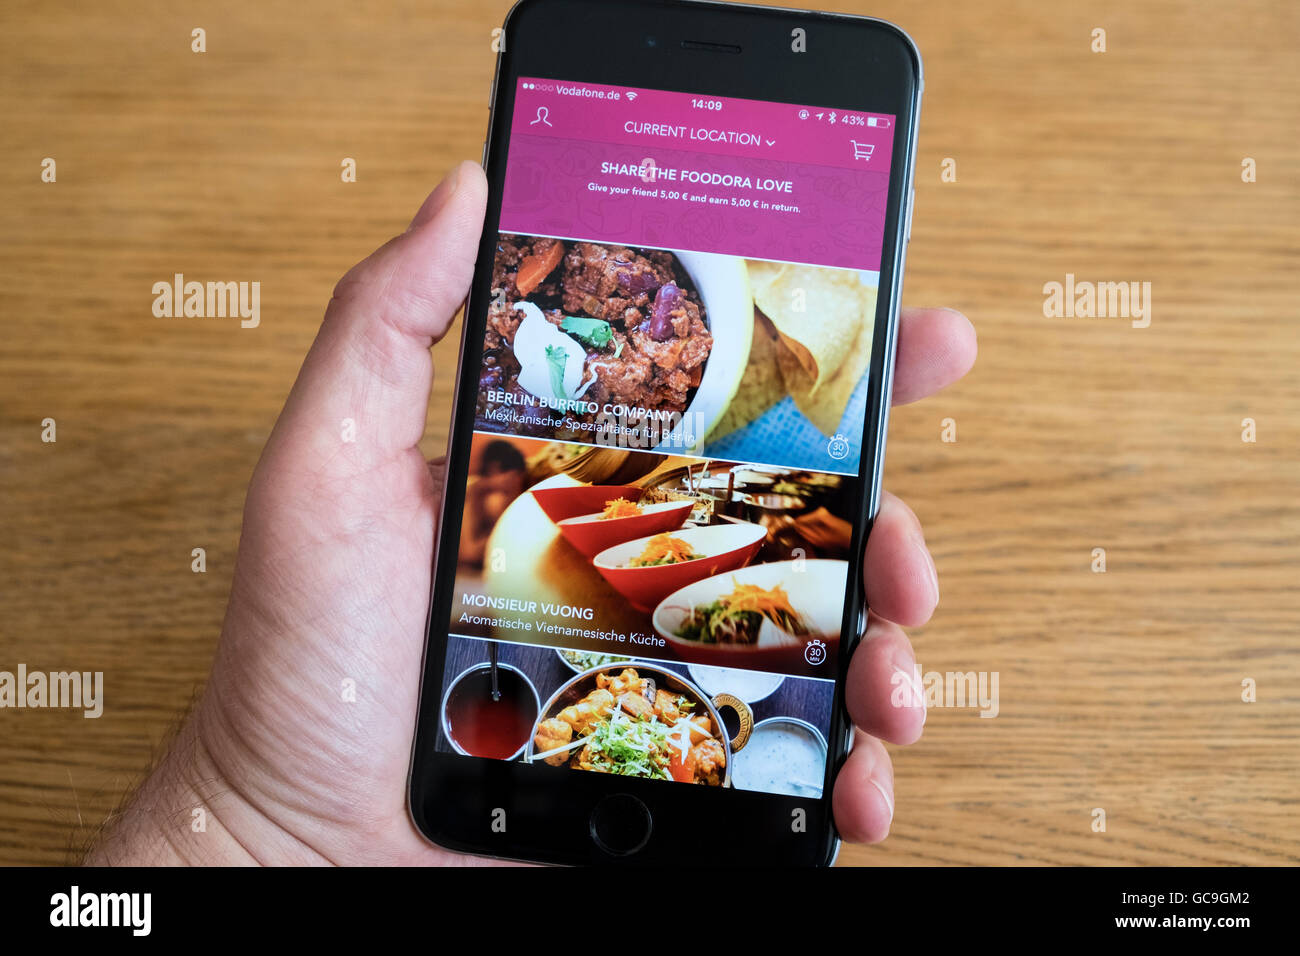 Foodora app restaurant food delivery service on an iPhone 6 smart phone - Stock Image